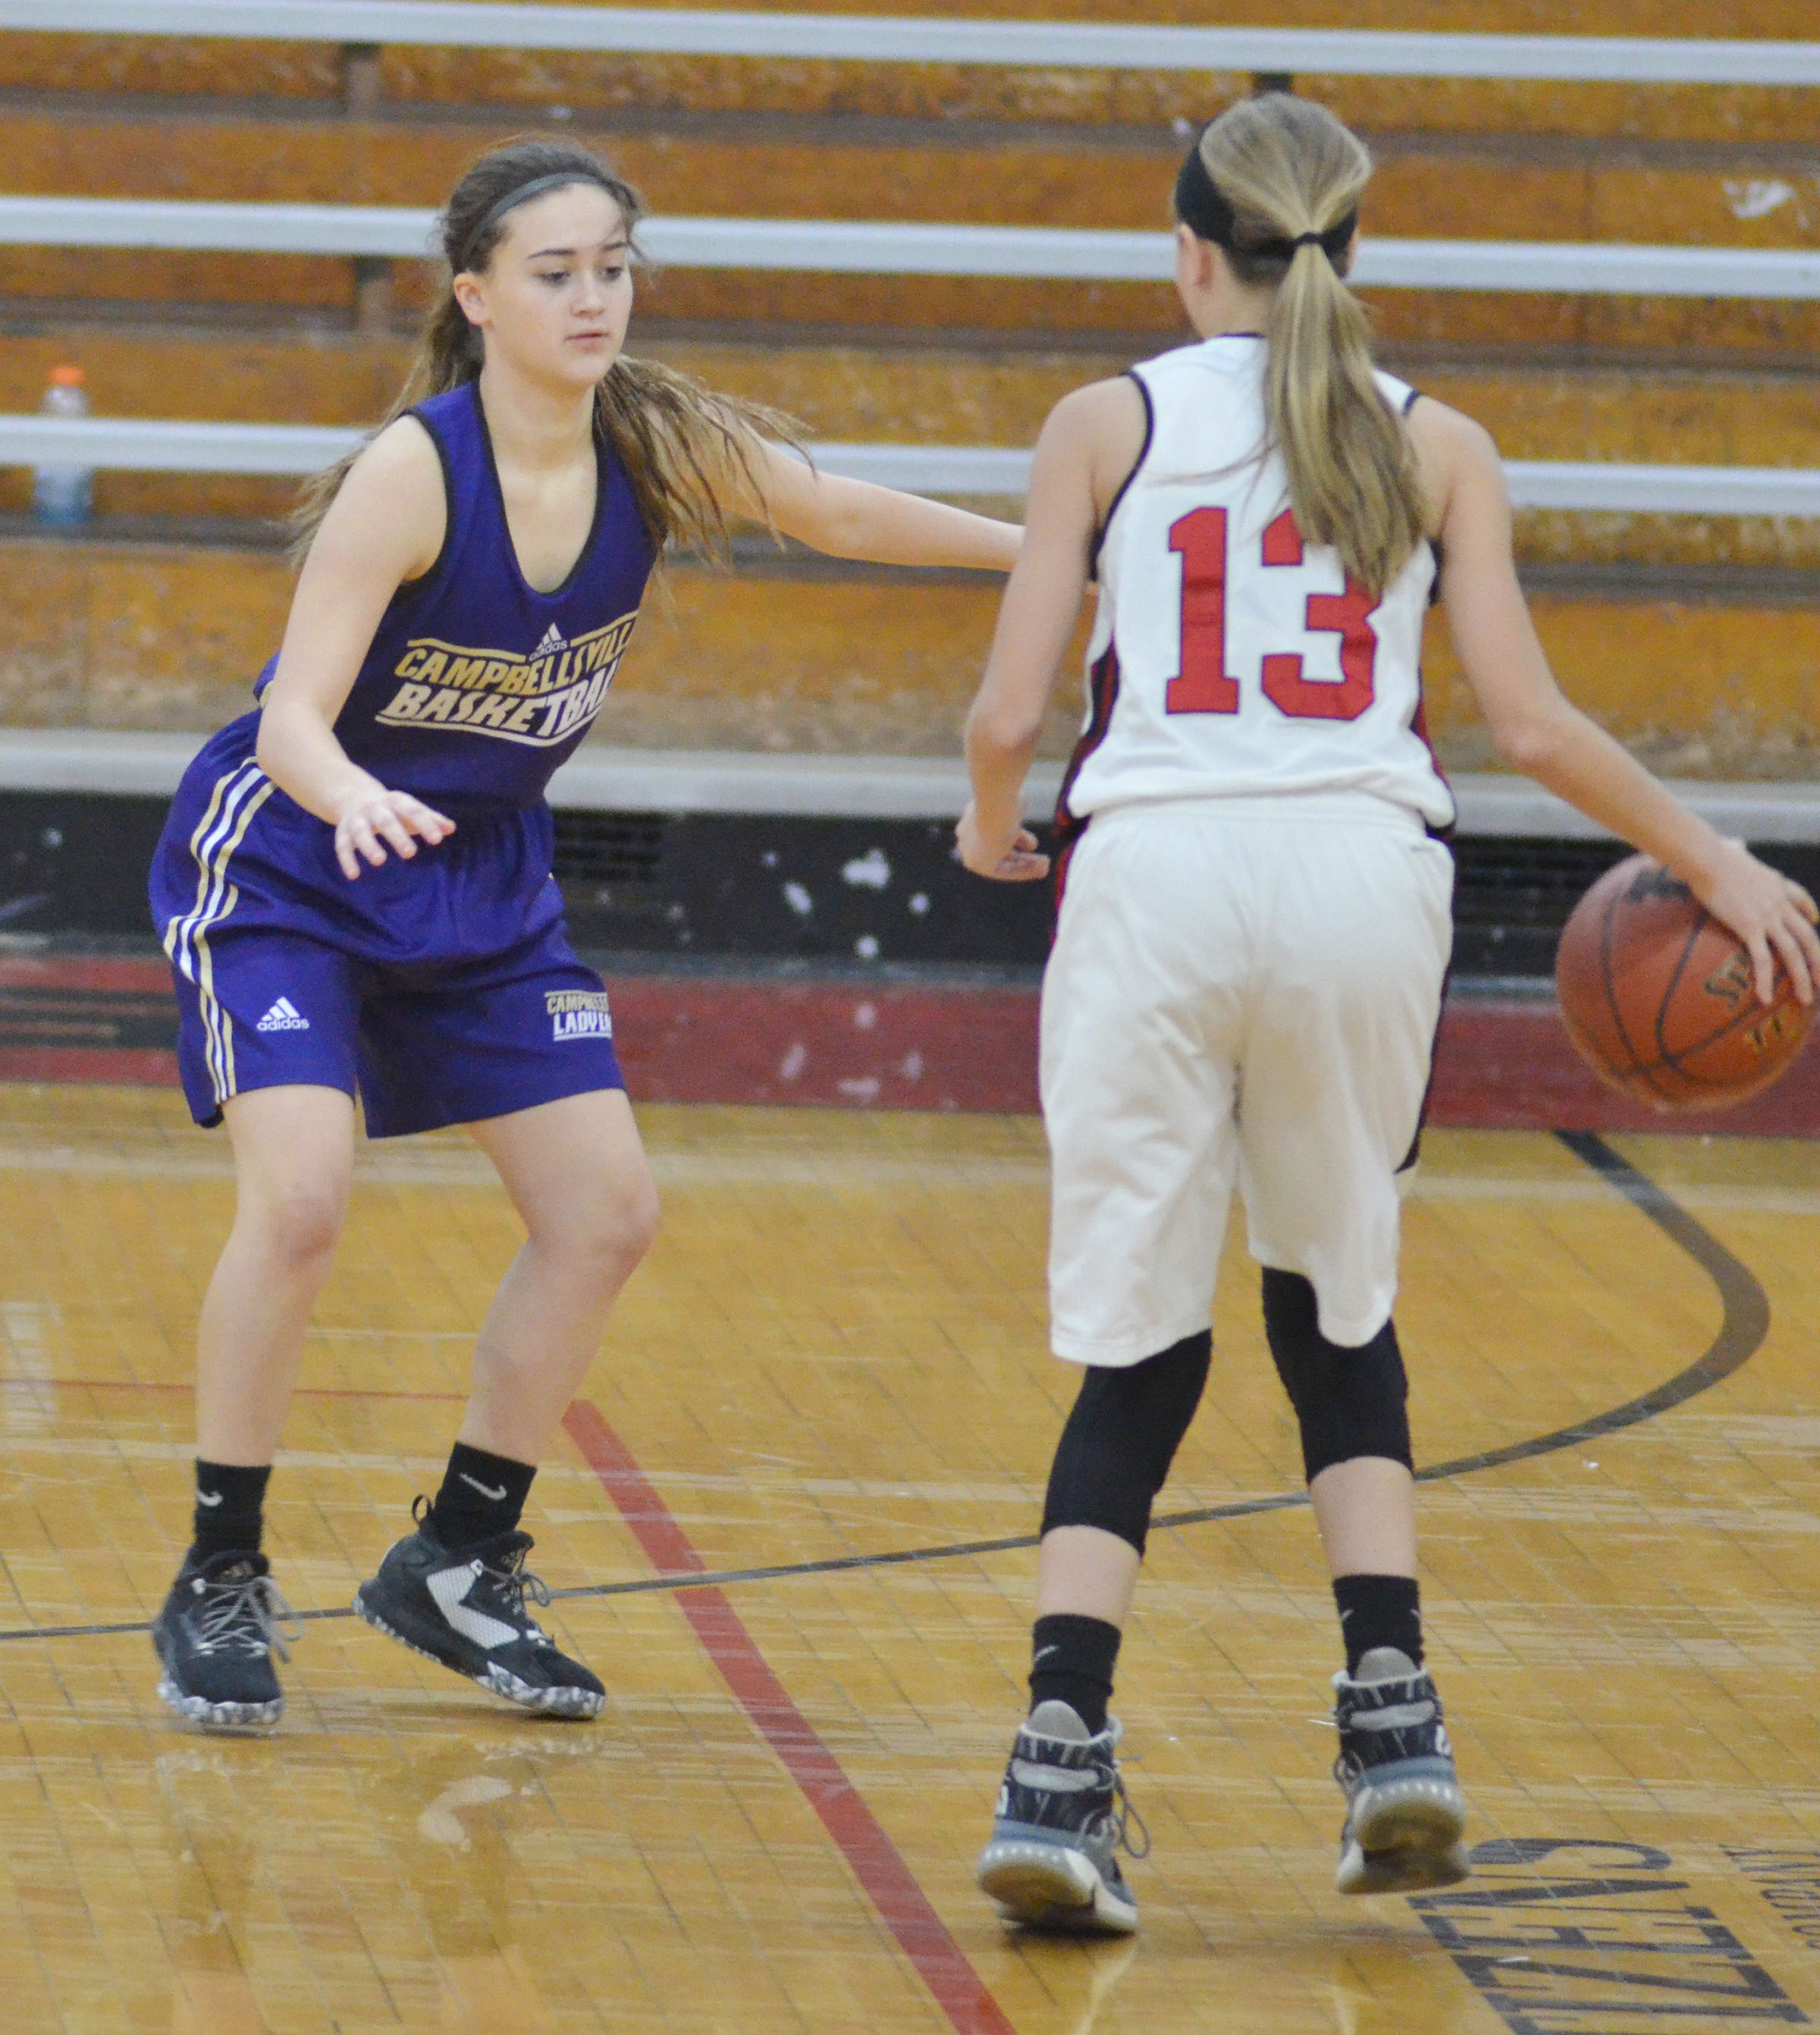 CHS freshman Bailey Thompson plays defense.